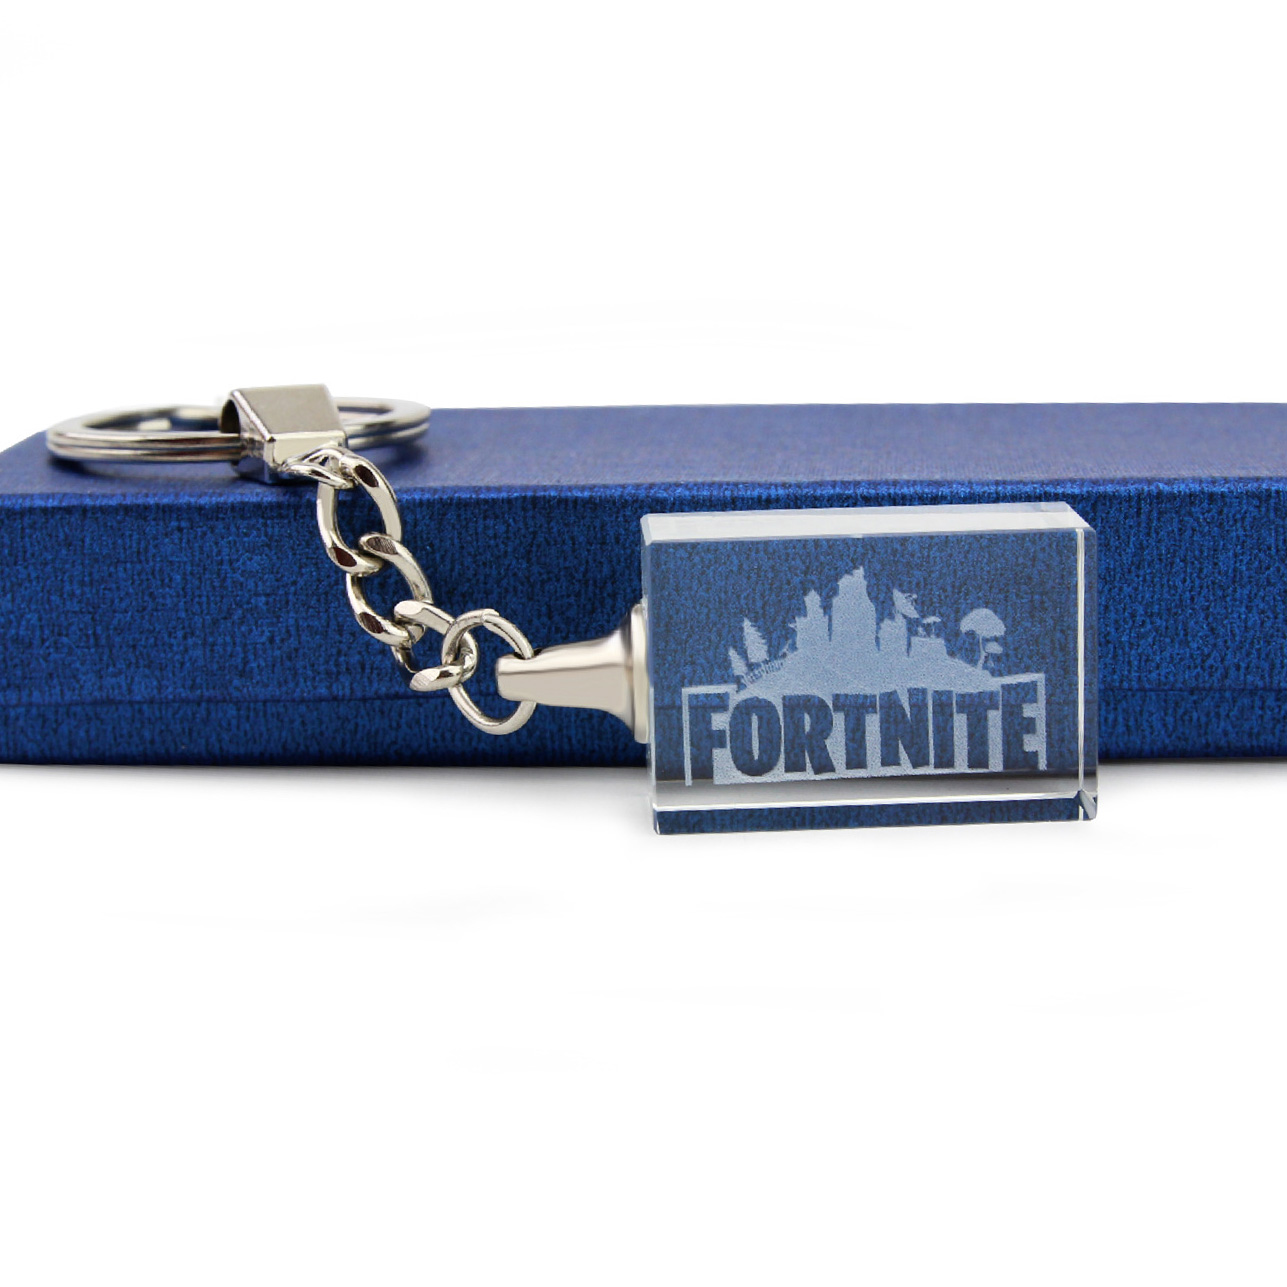 The Newest FPS Game for Fortnite Battle Royal Crystal Keychain Rectangle Pendant Gift Box Packaging Free Shipping